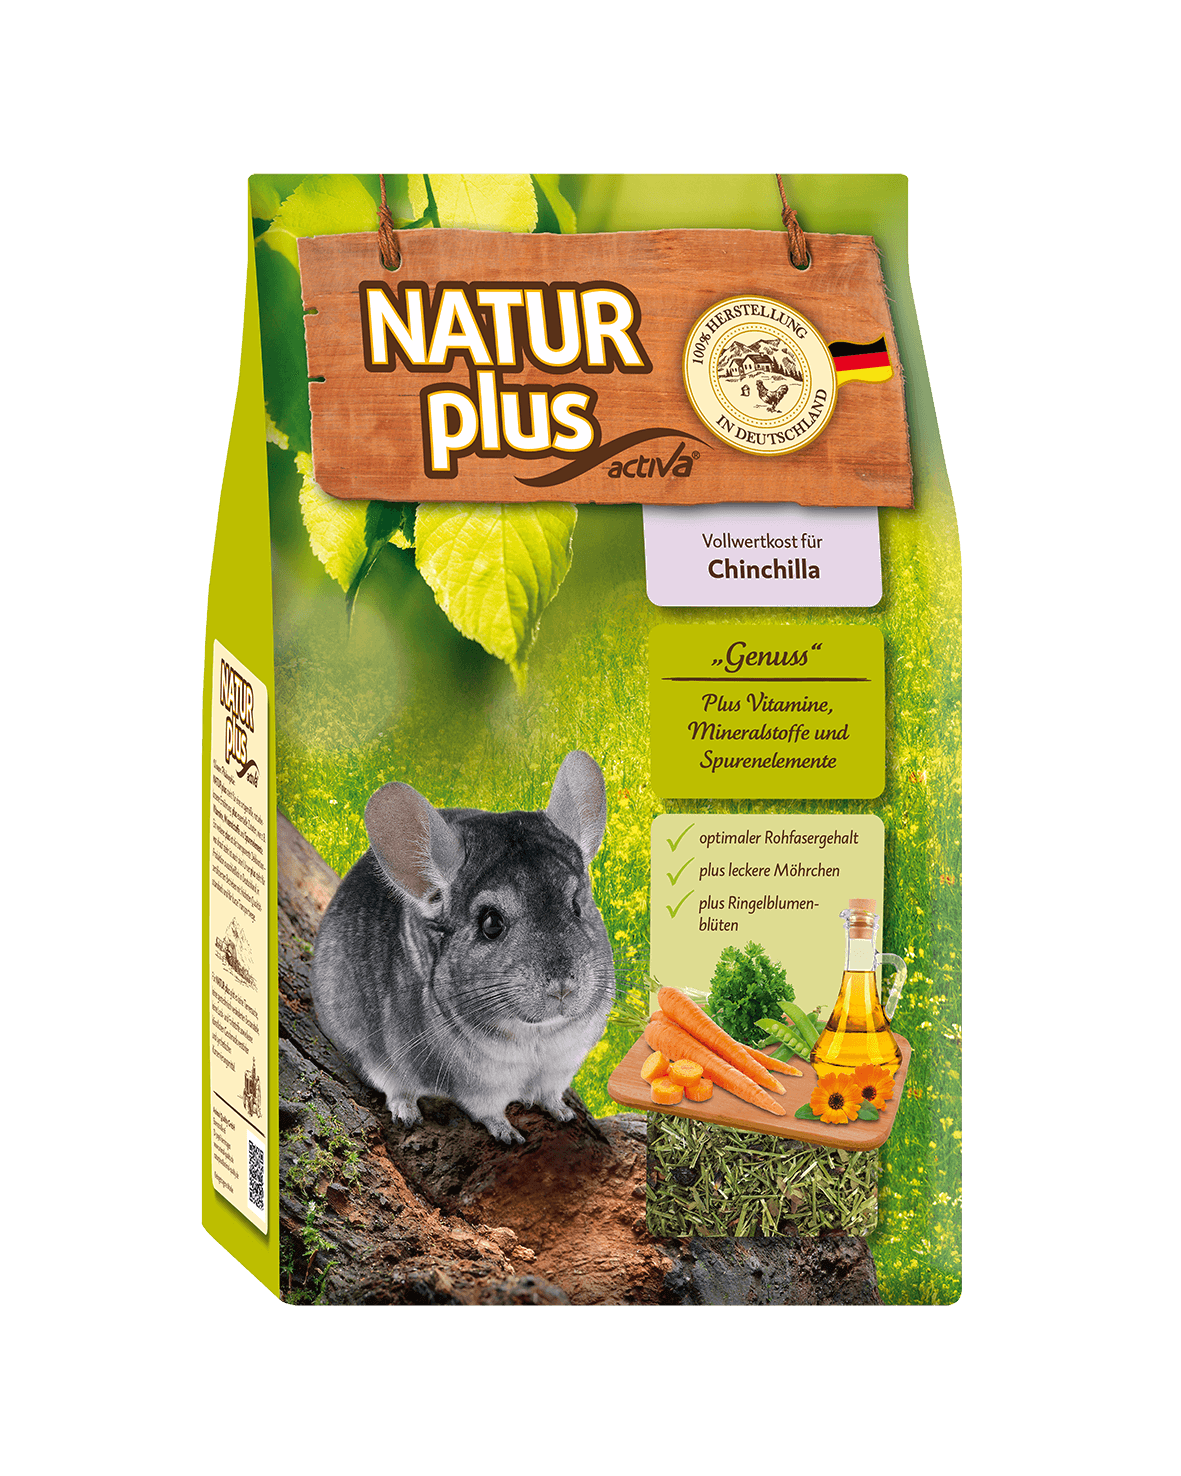 Natur plus Chinchilla